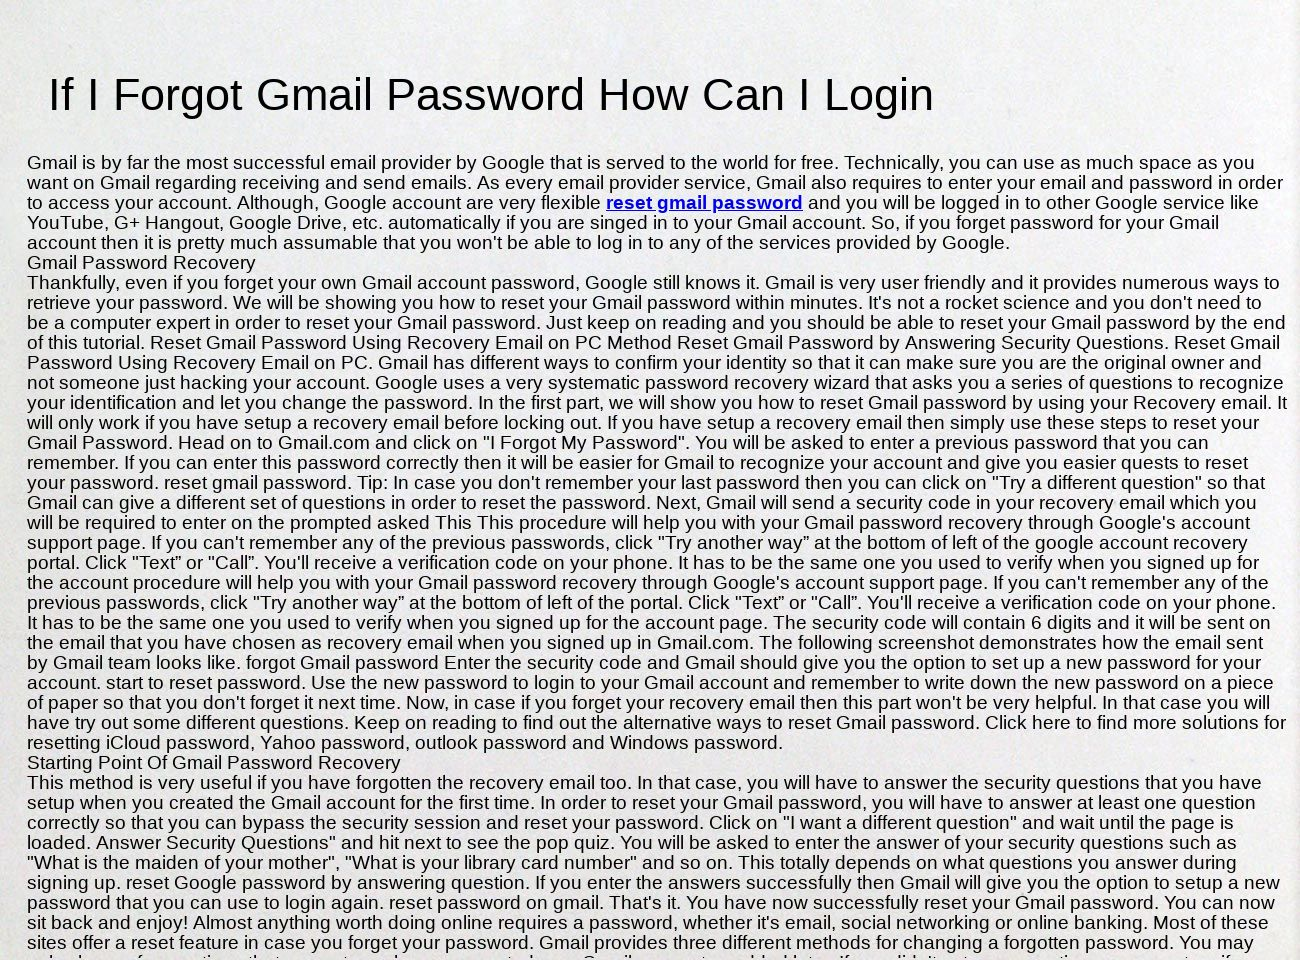 Reset Gmail PAssword: text, images, music, video | Glogster